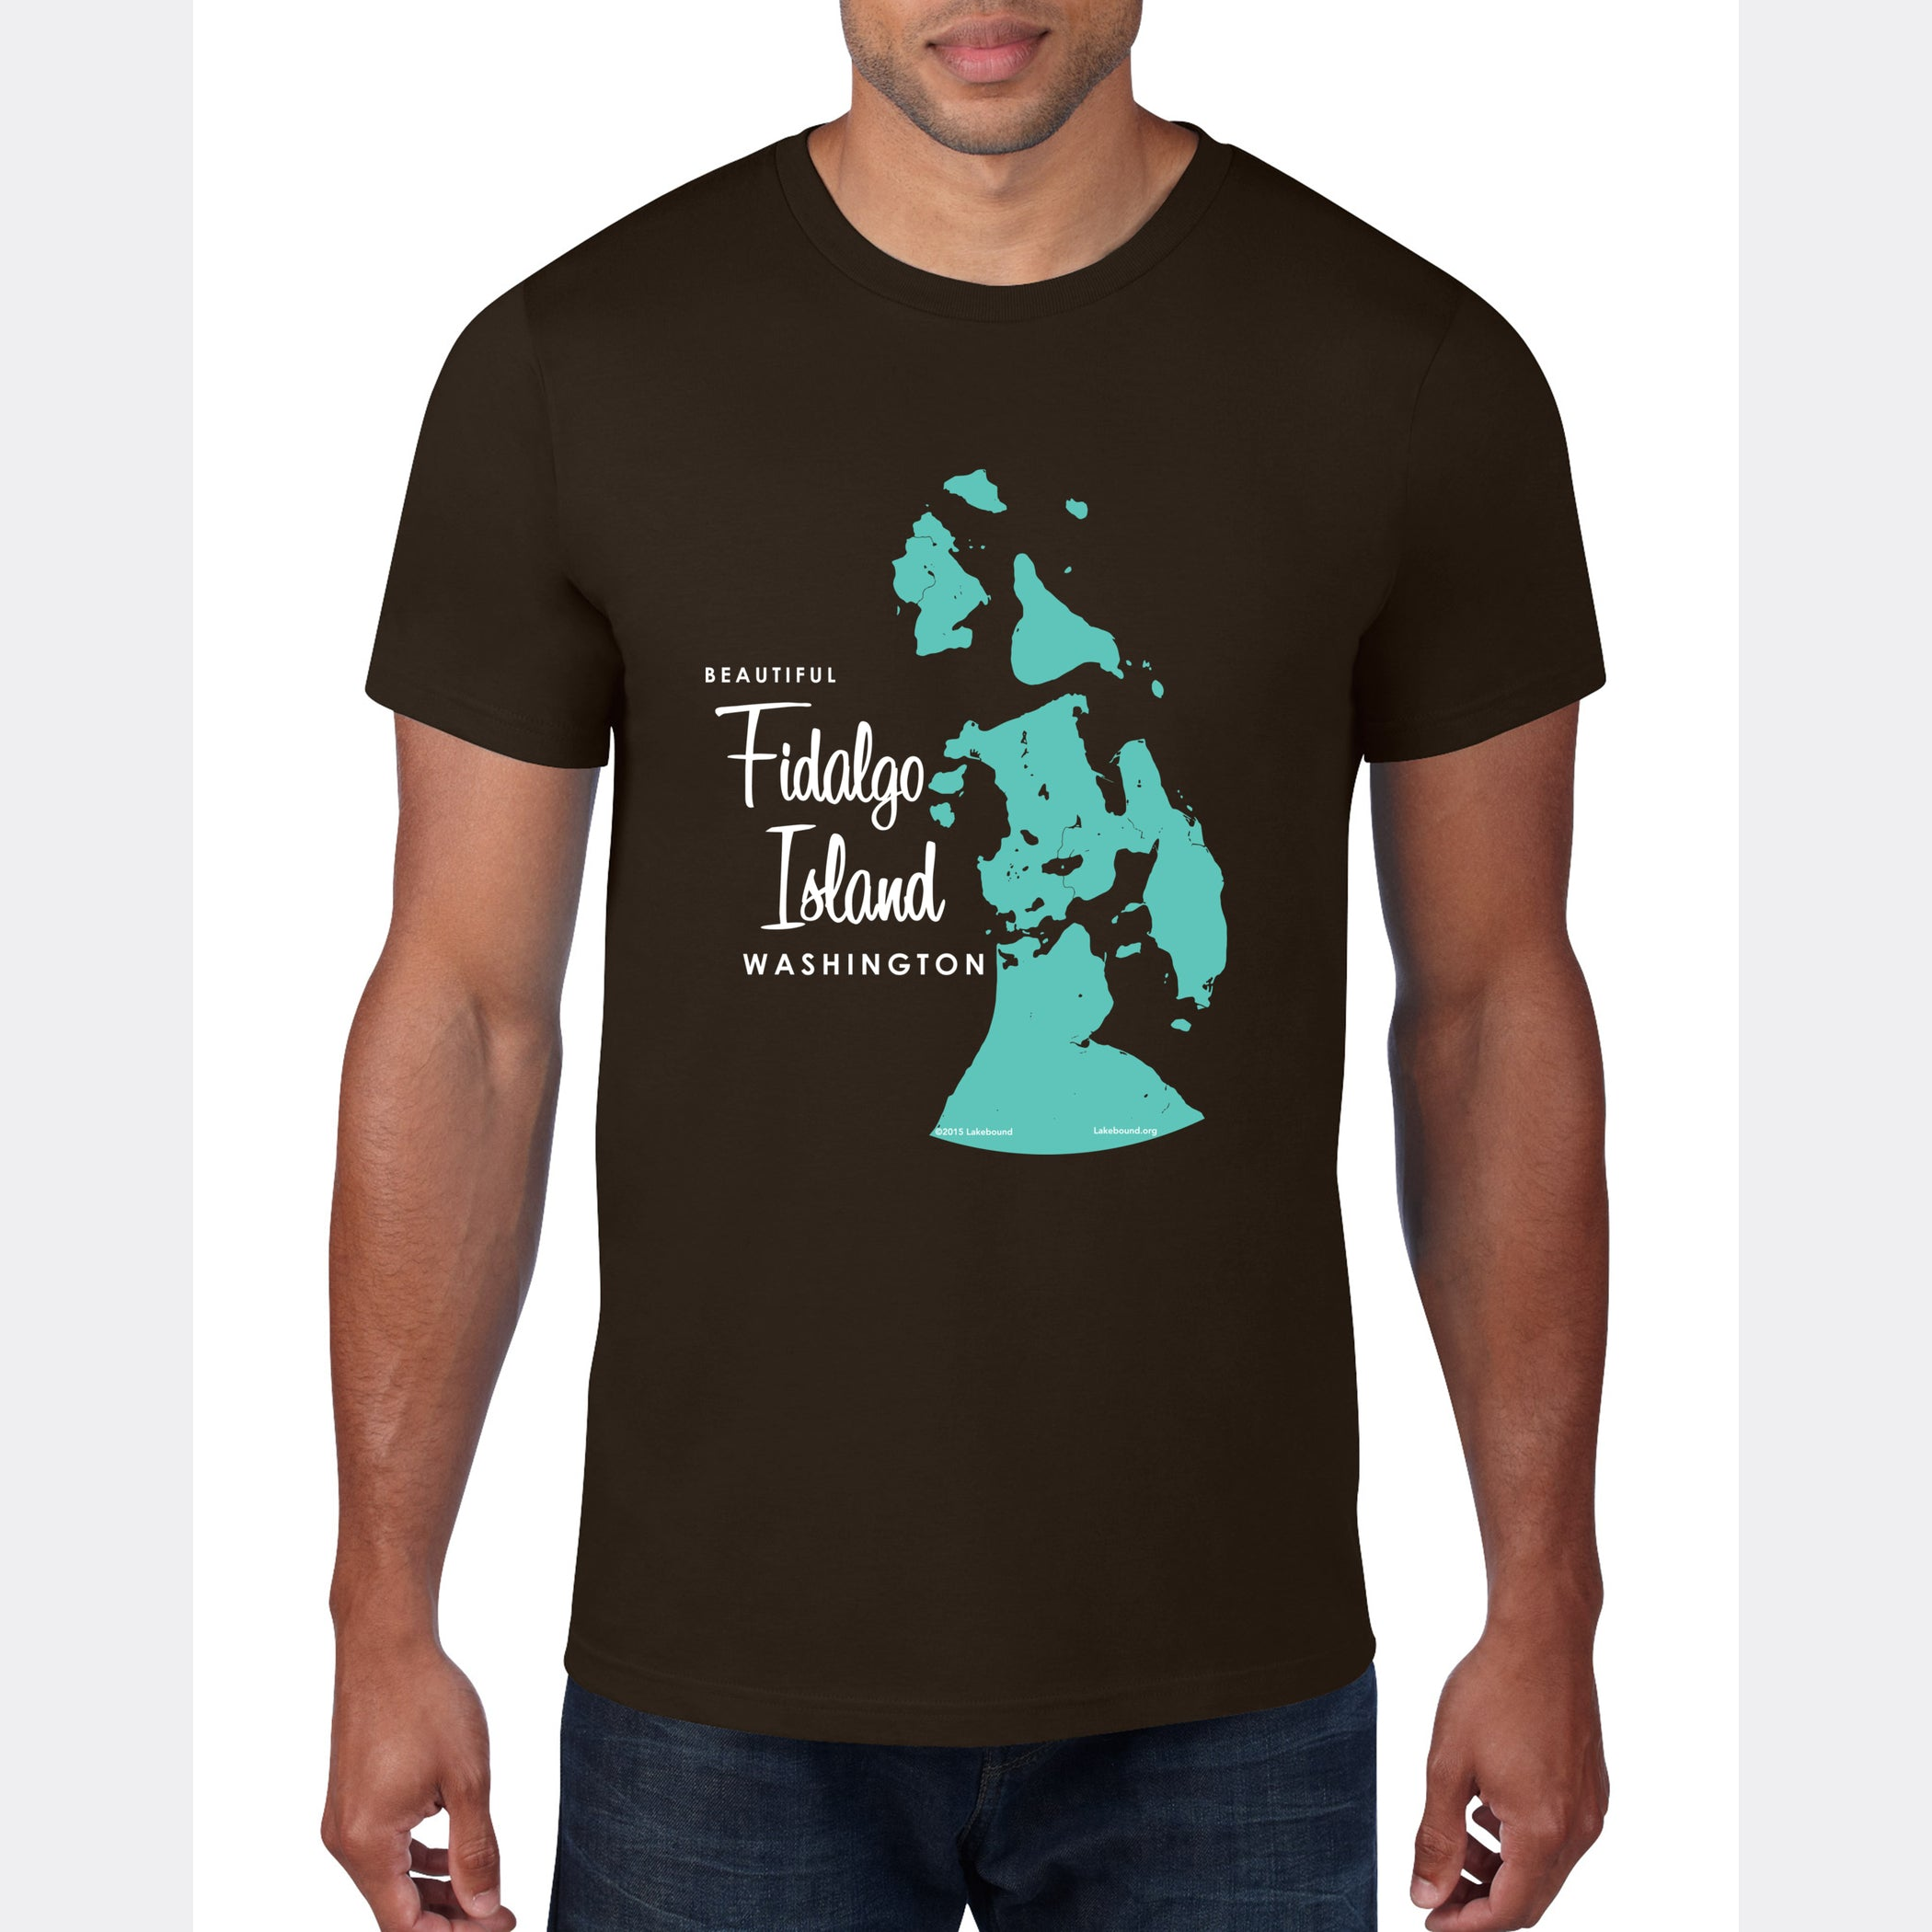 Fidalgo Island Washington, T-Shirt